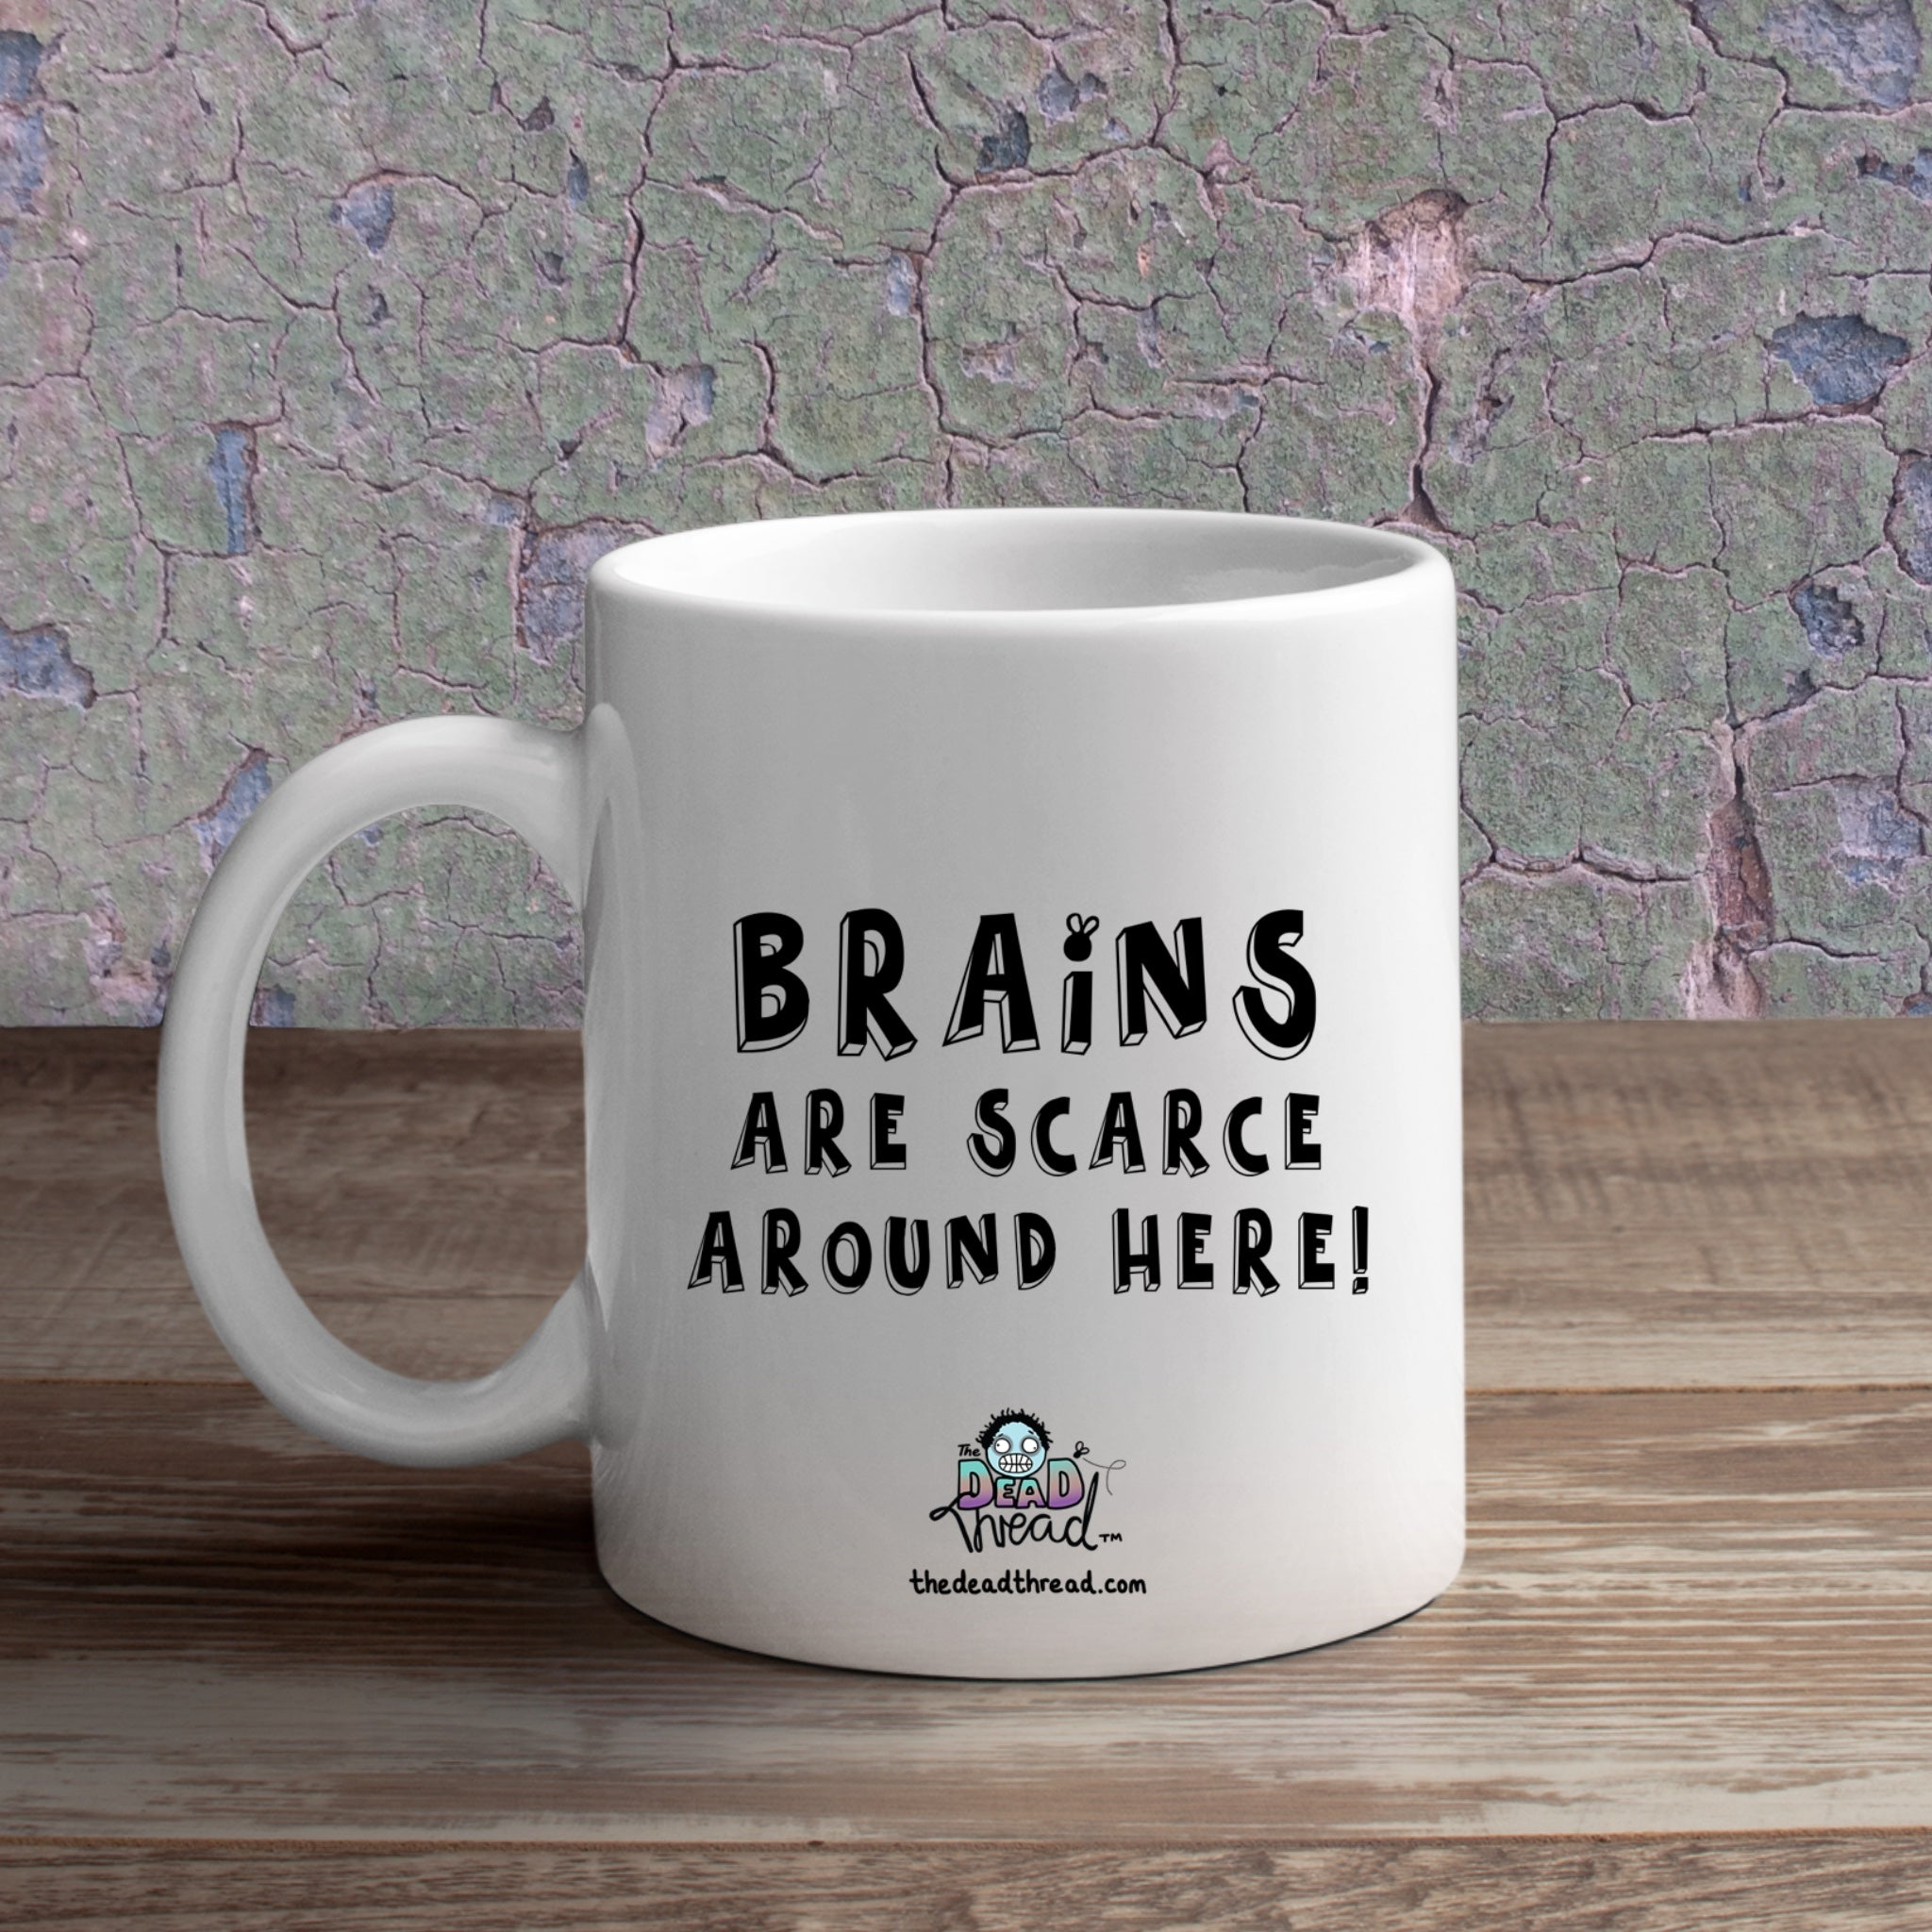 Brains Are A Bit Scarce Round Here (Female zombie) Mug from The Dead Thread™.